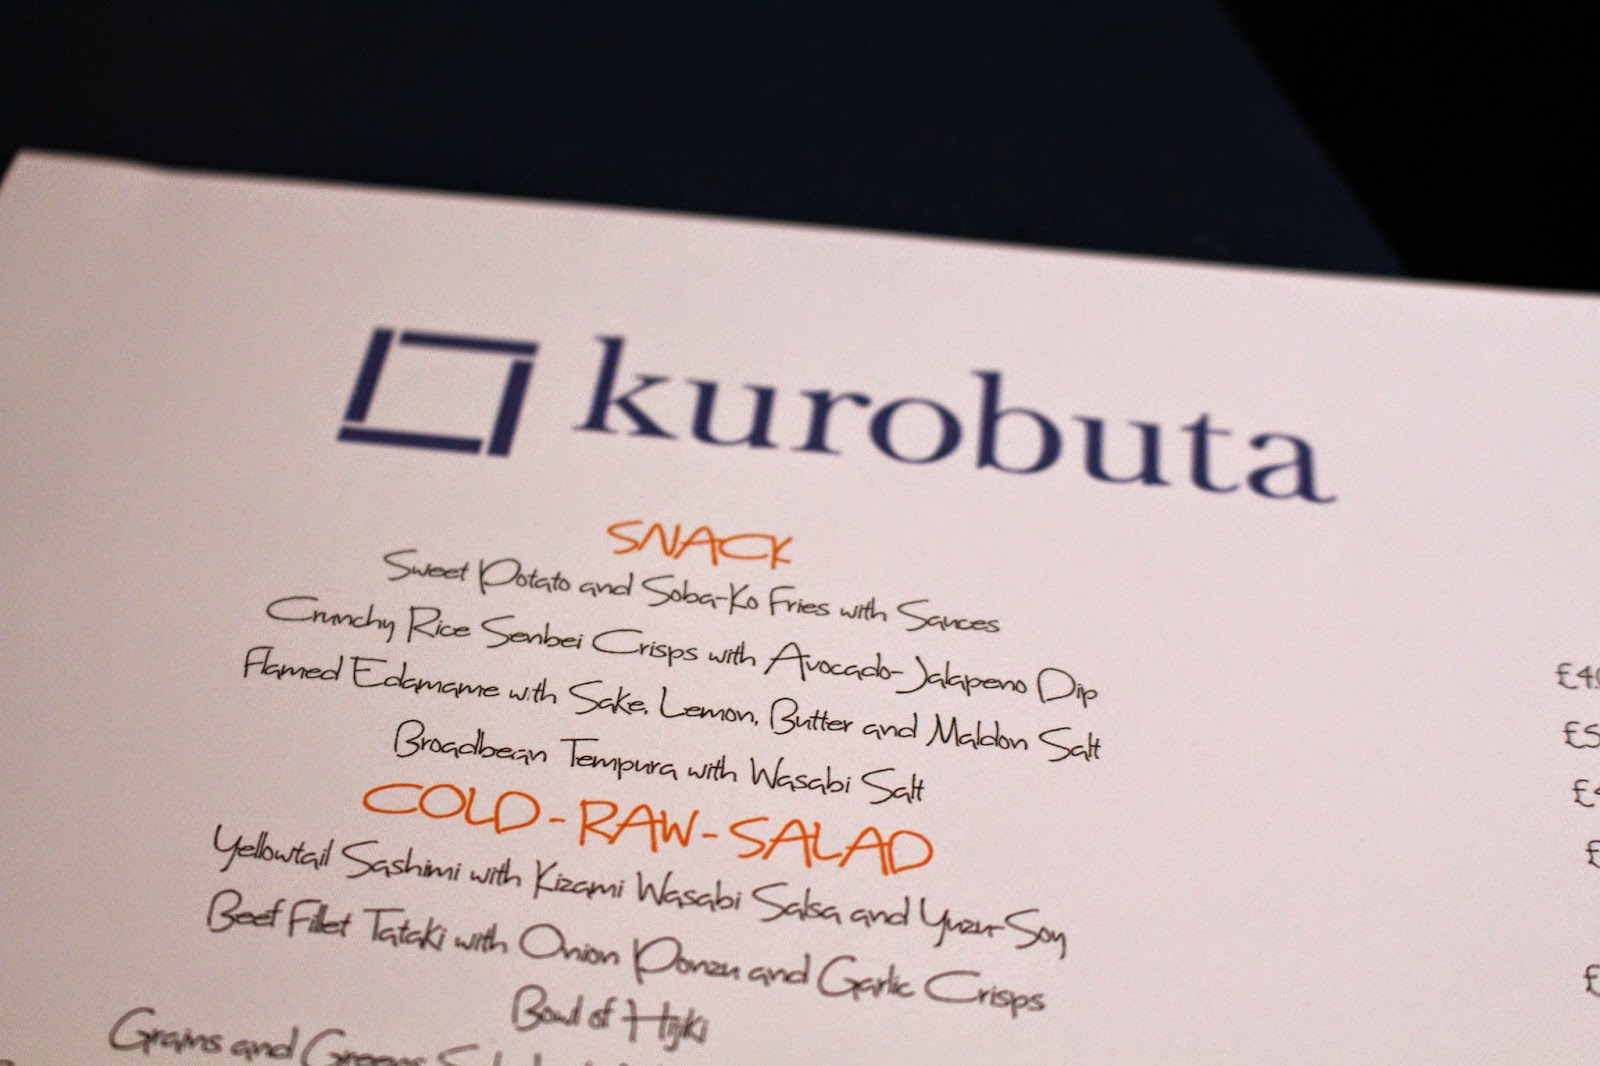 Kurobuta Marble Arch | London menu